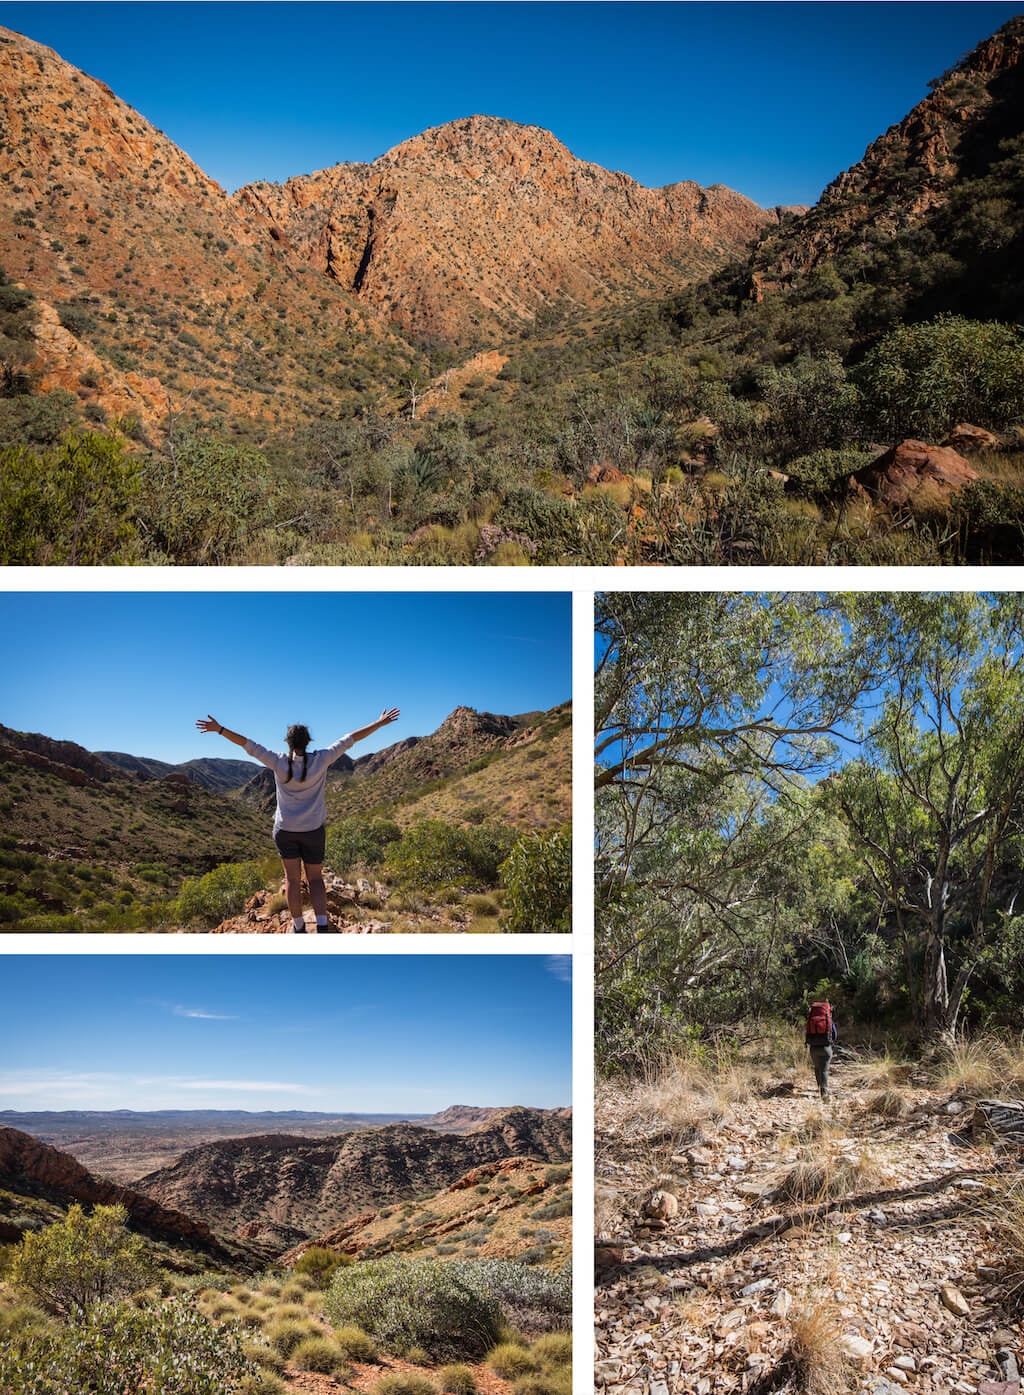 Standley Chasm surrounds - Beautiful photography taken while trekking the Larapinta Trail in Central Australia